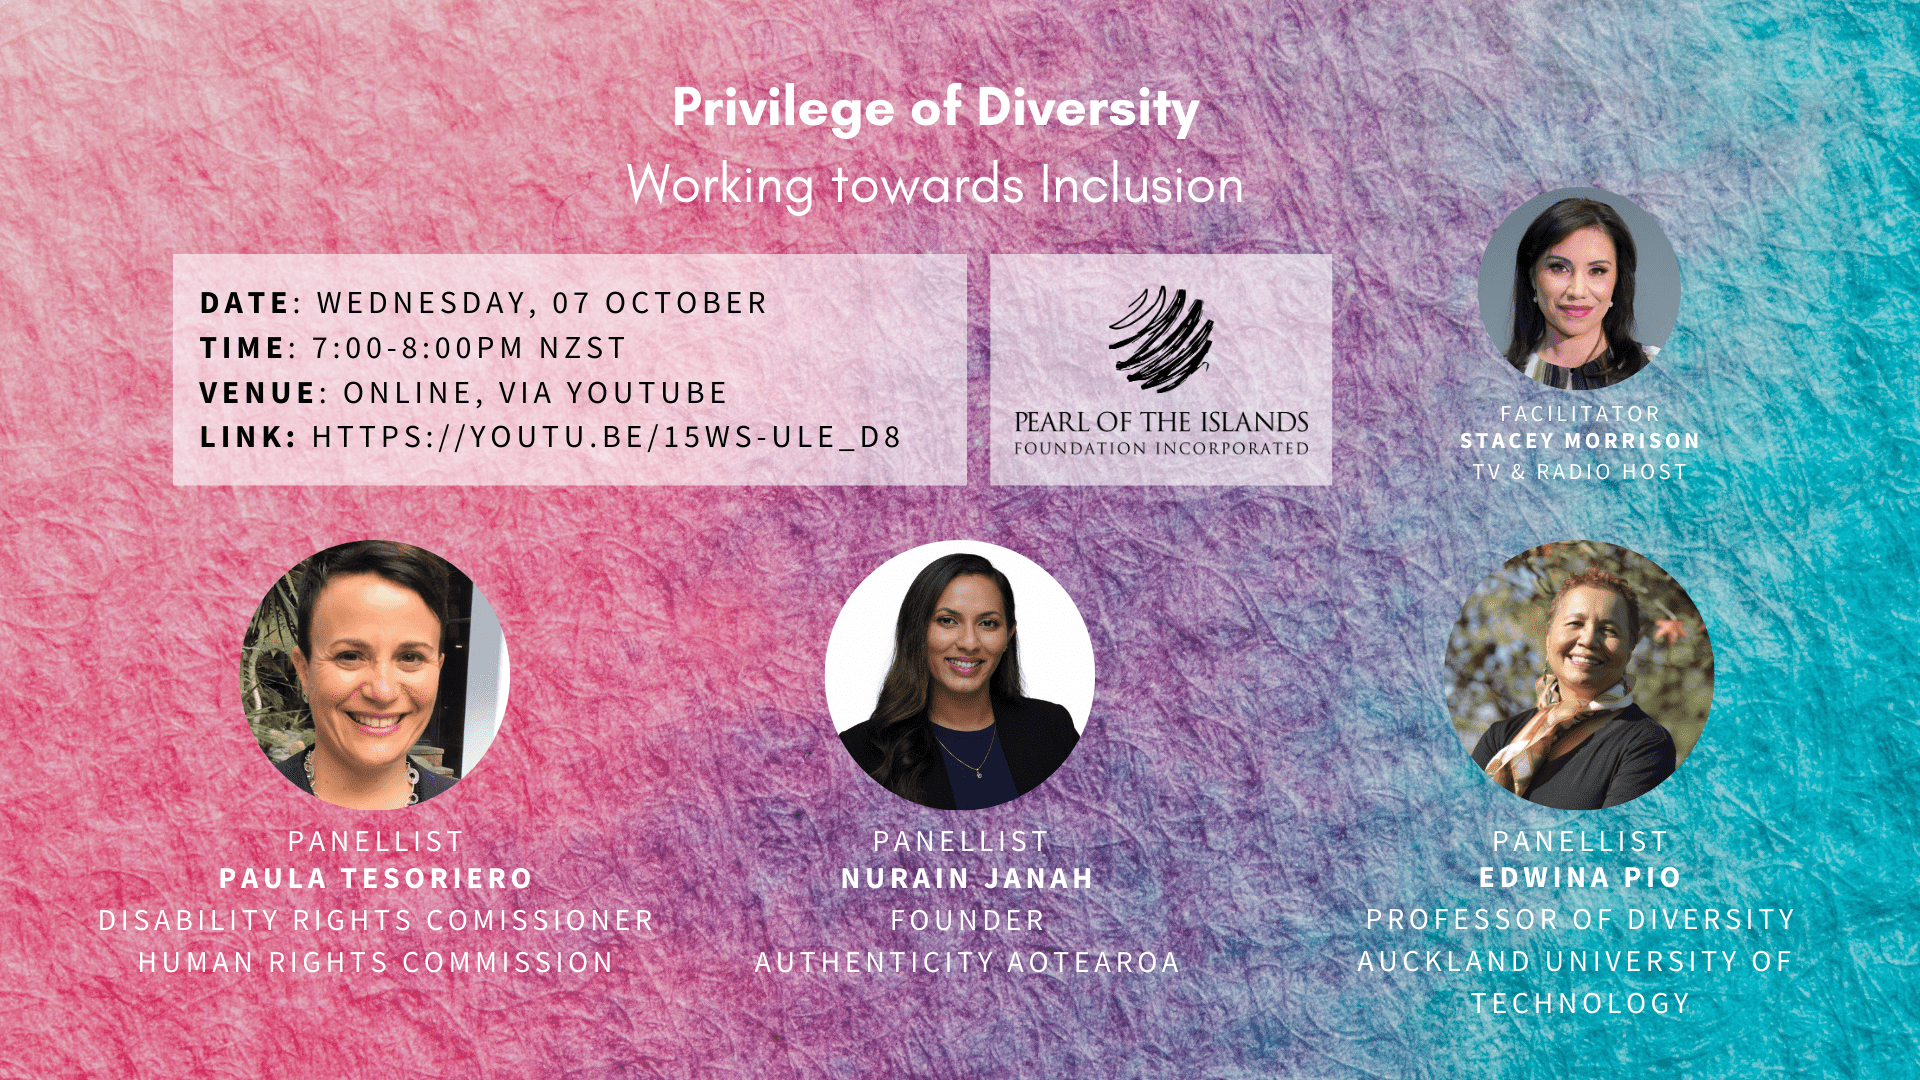 PANEL: Privilege of Diversity: Working towards Inclusion